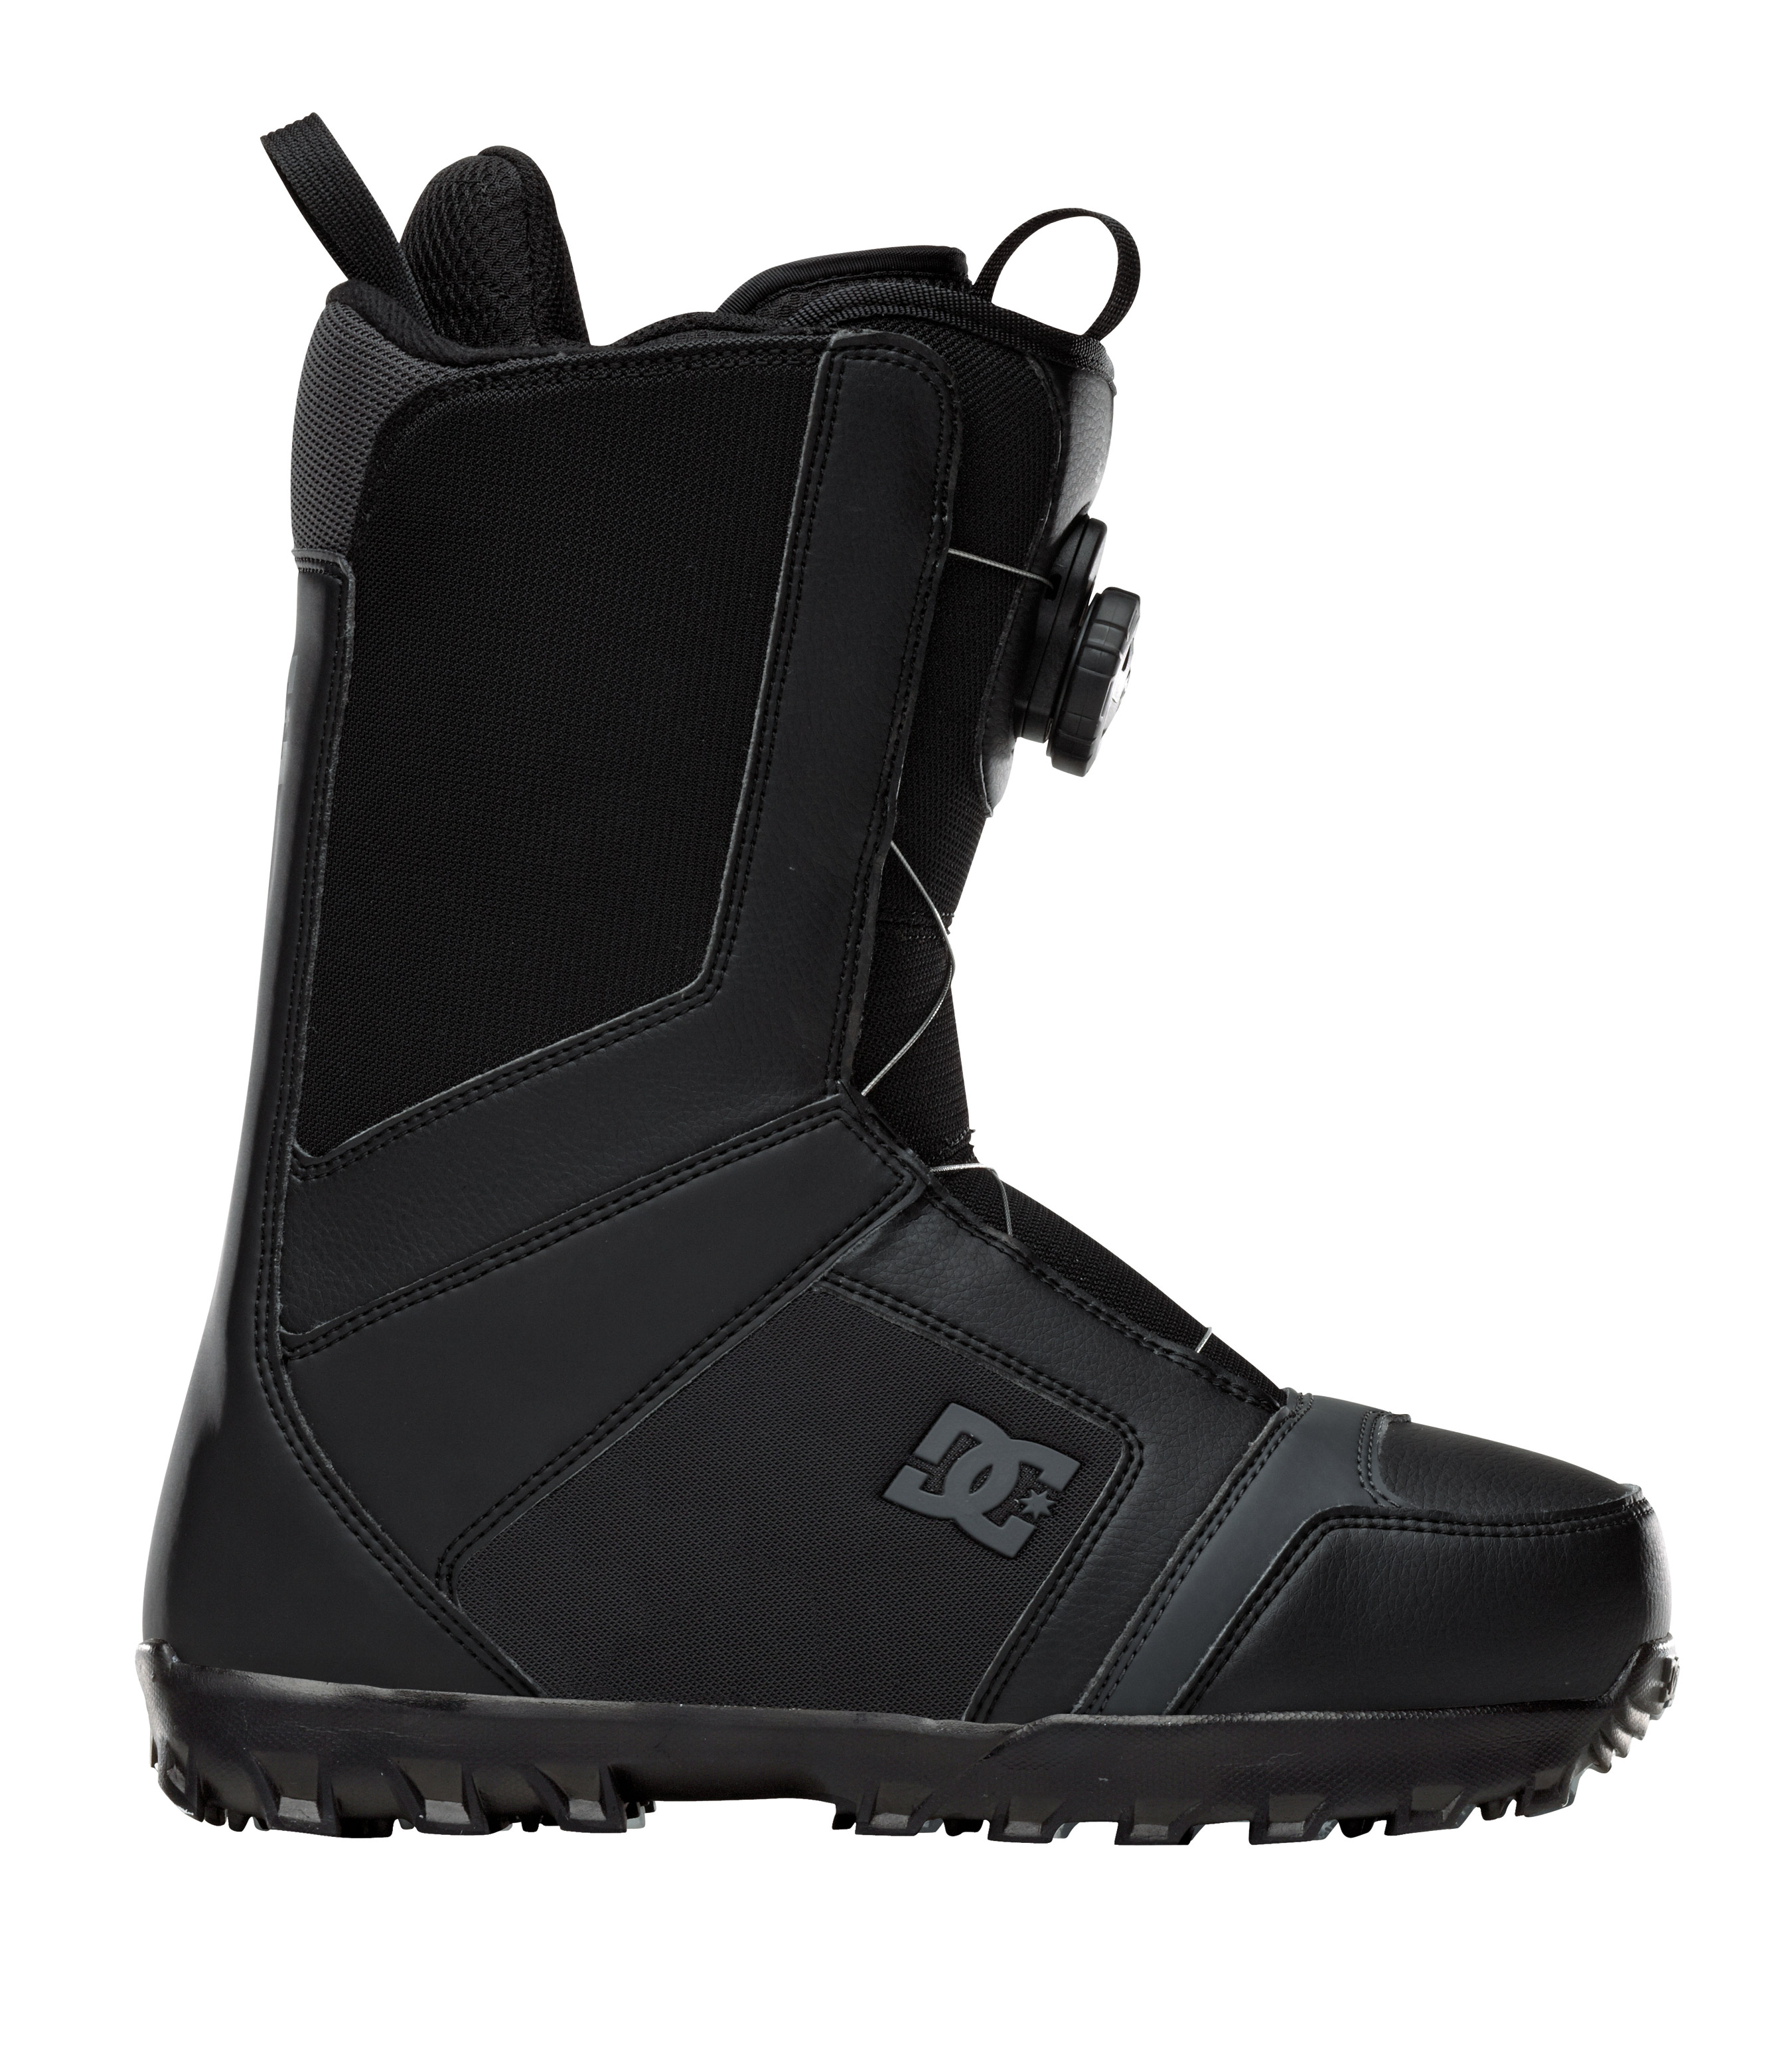 Snowboard The Scout has established itself as a staple in the DC line because it doesn't sacrifice comfort, style or performance. The BOA closure system gives you the power to dial in the fit you want. DC added a new low profile UNILITE outsole this year to make this rider's favorite better than ever.Key Features of the DC Scout BOA Snowboard Boots: BOA lacing system UNILITE Command Liner Flex Rating: 5 - $118.95